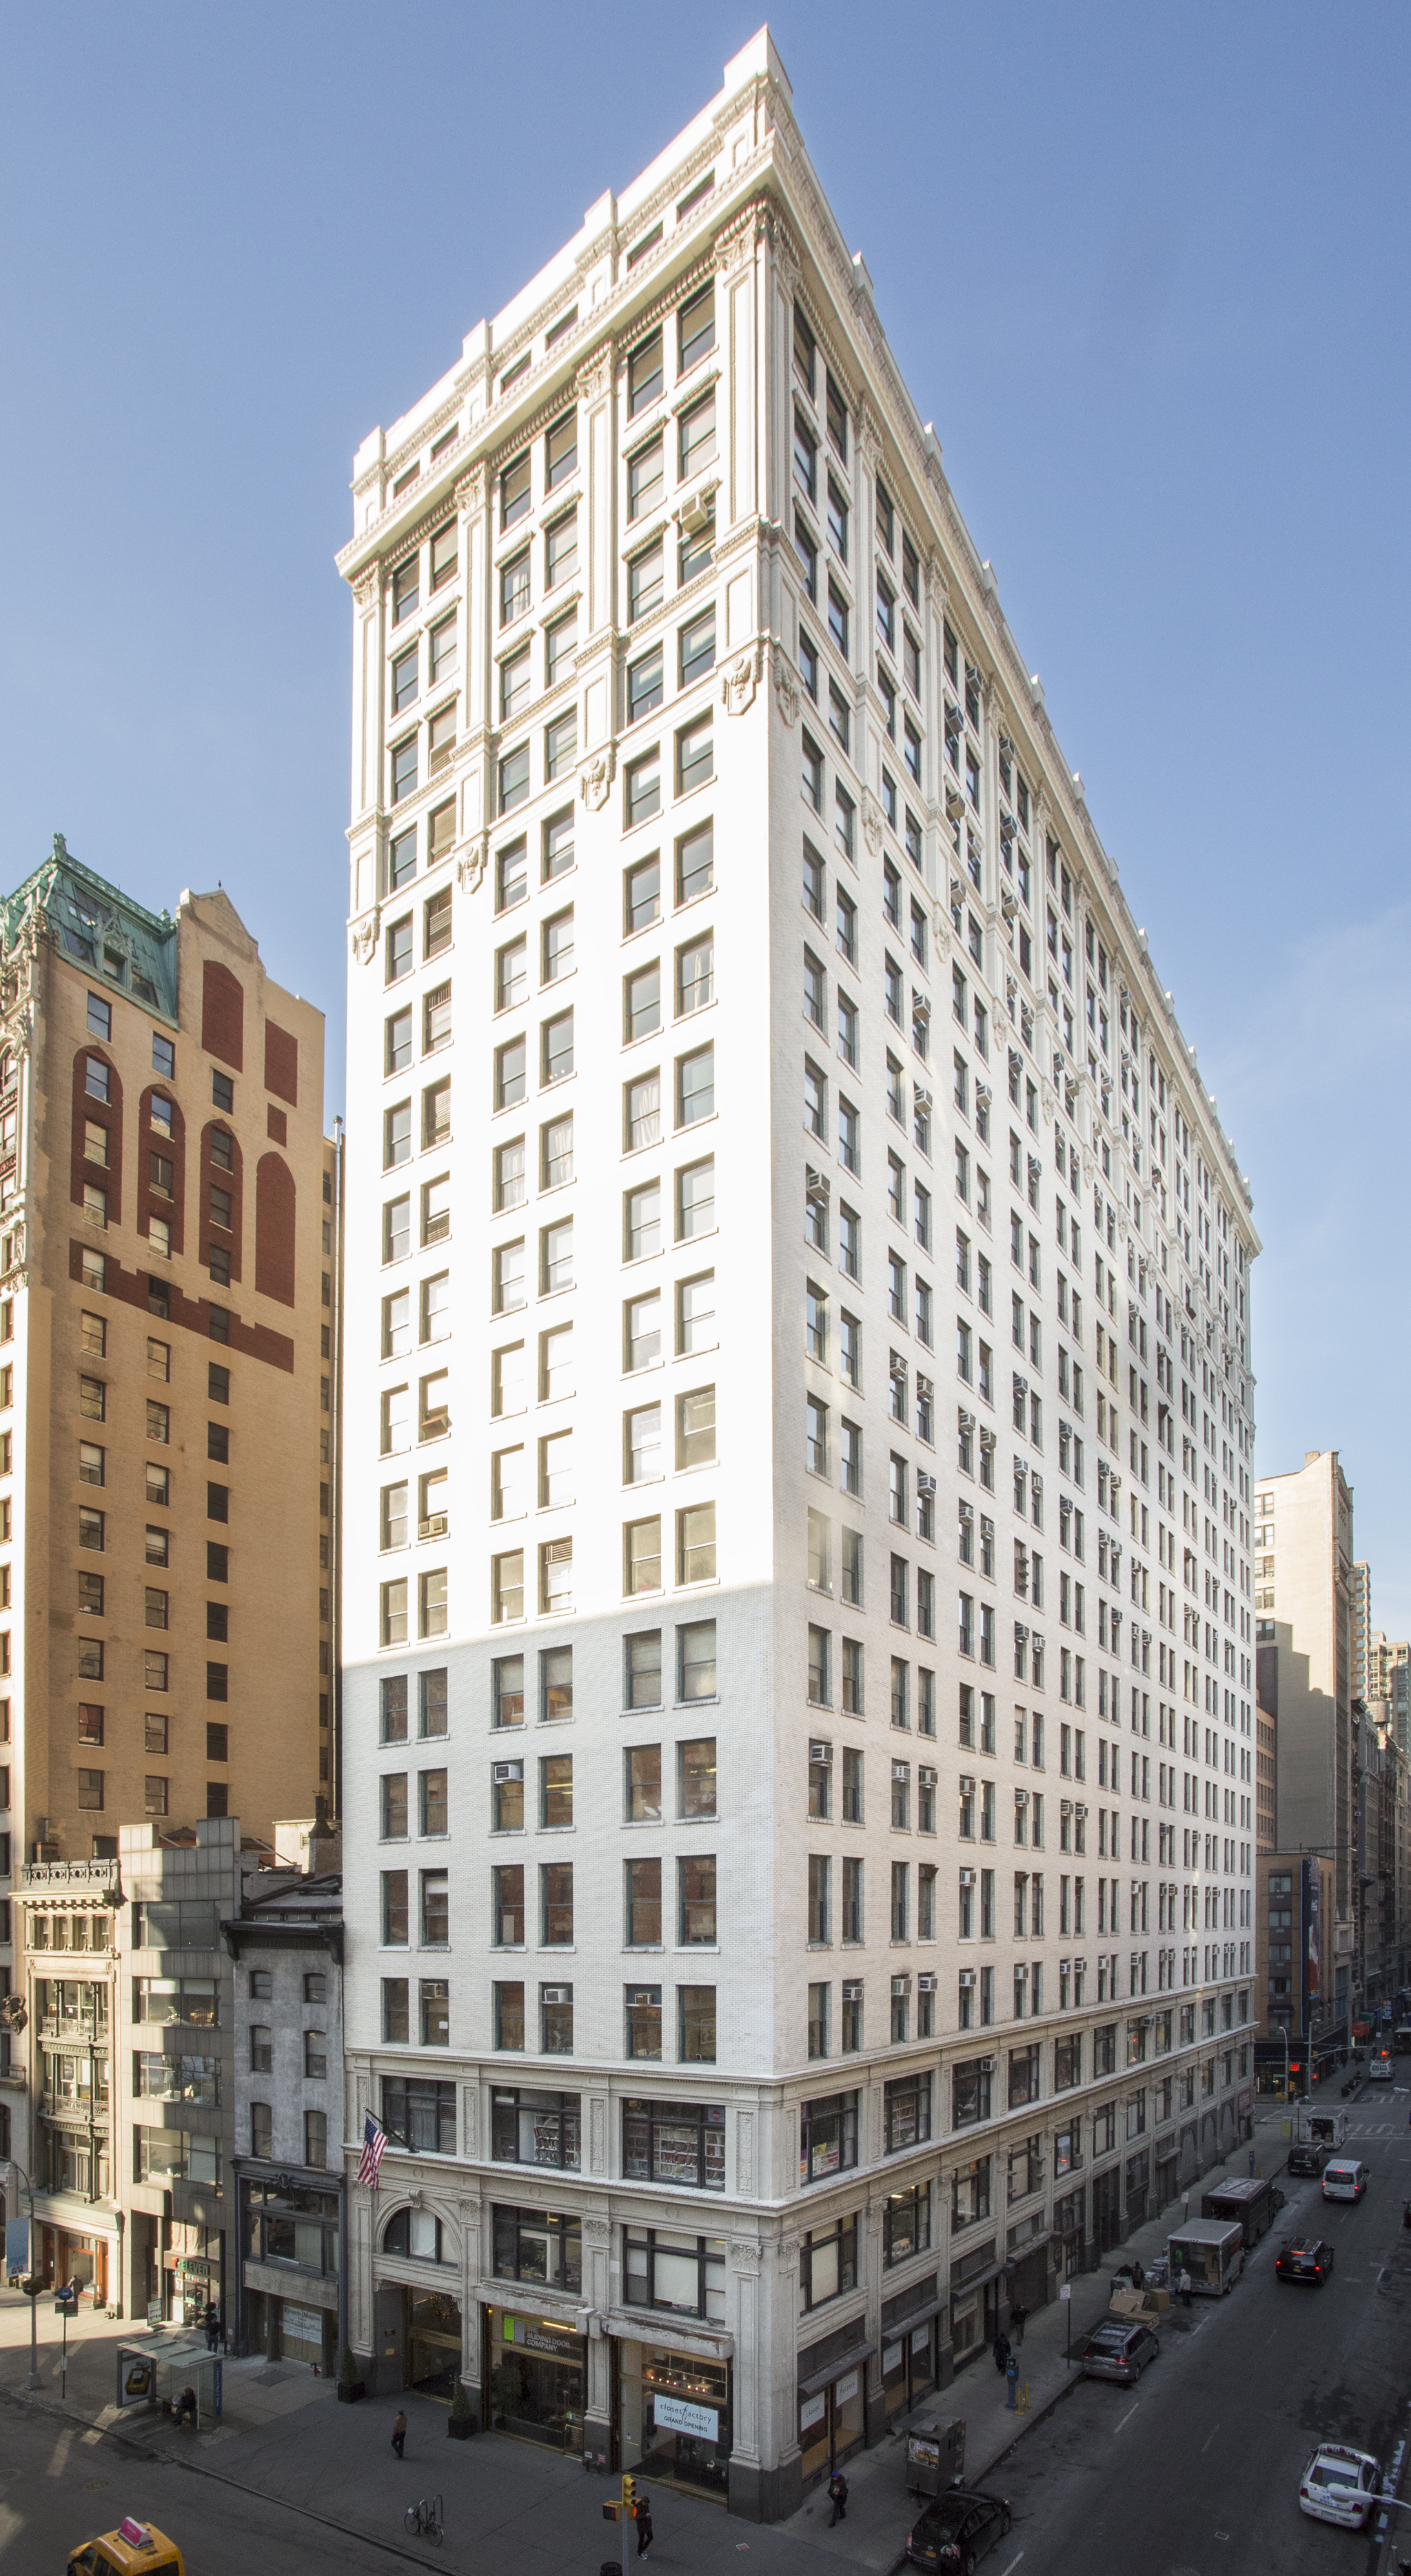 230 Fifth Ave-Retouched_JoshuaLutz_-3879.jpg